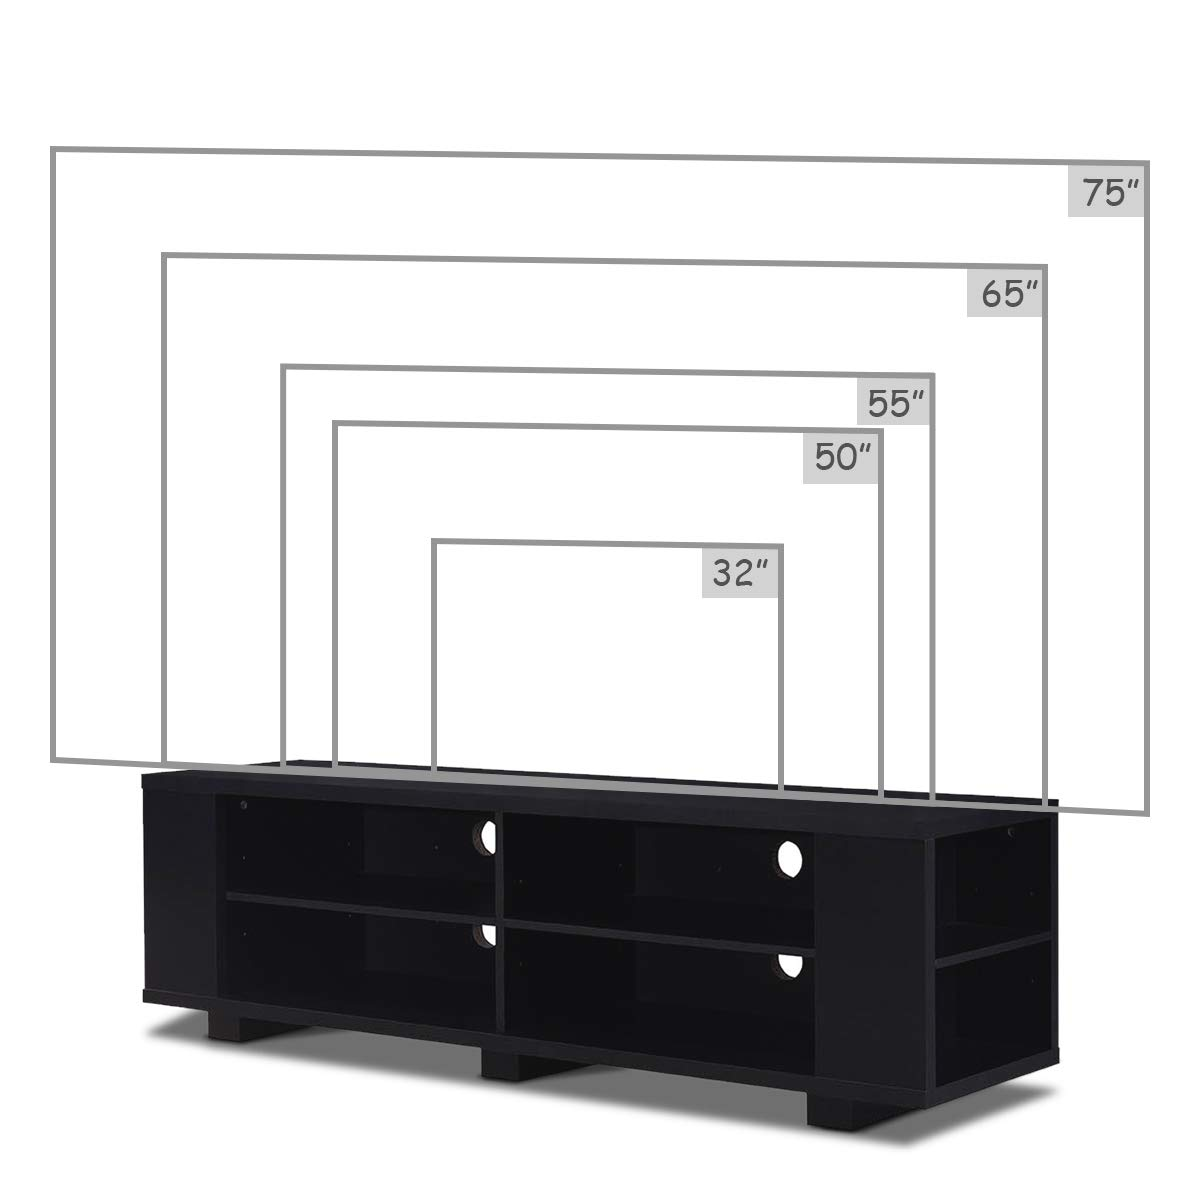 Black Home Living Room Furniture with 8 Open Storage Shelves Tangkula TV Stand Modern Wood Storage Console Entertainment Center for TV up to 59